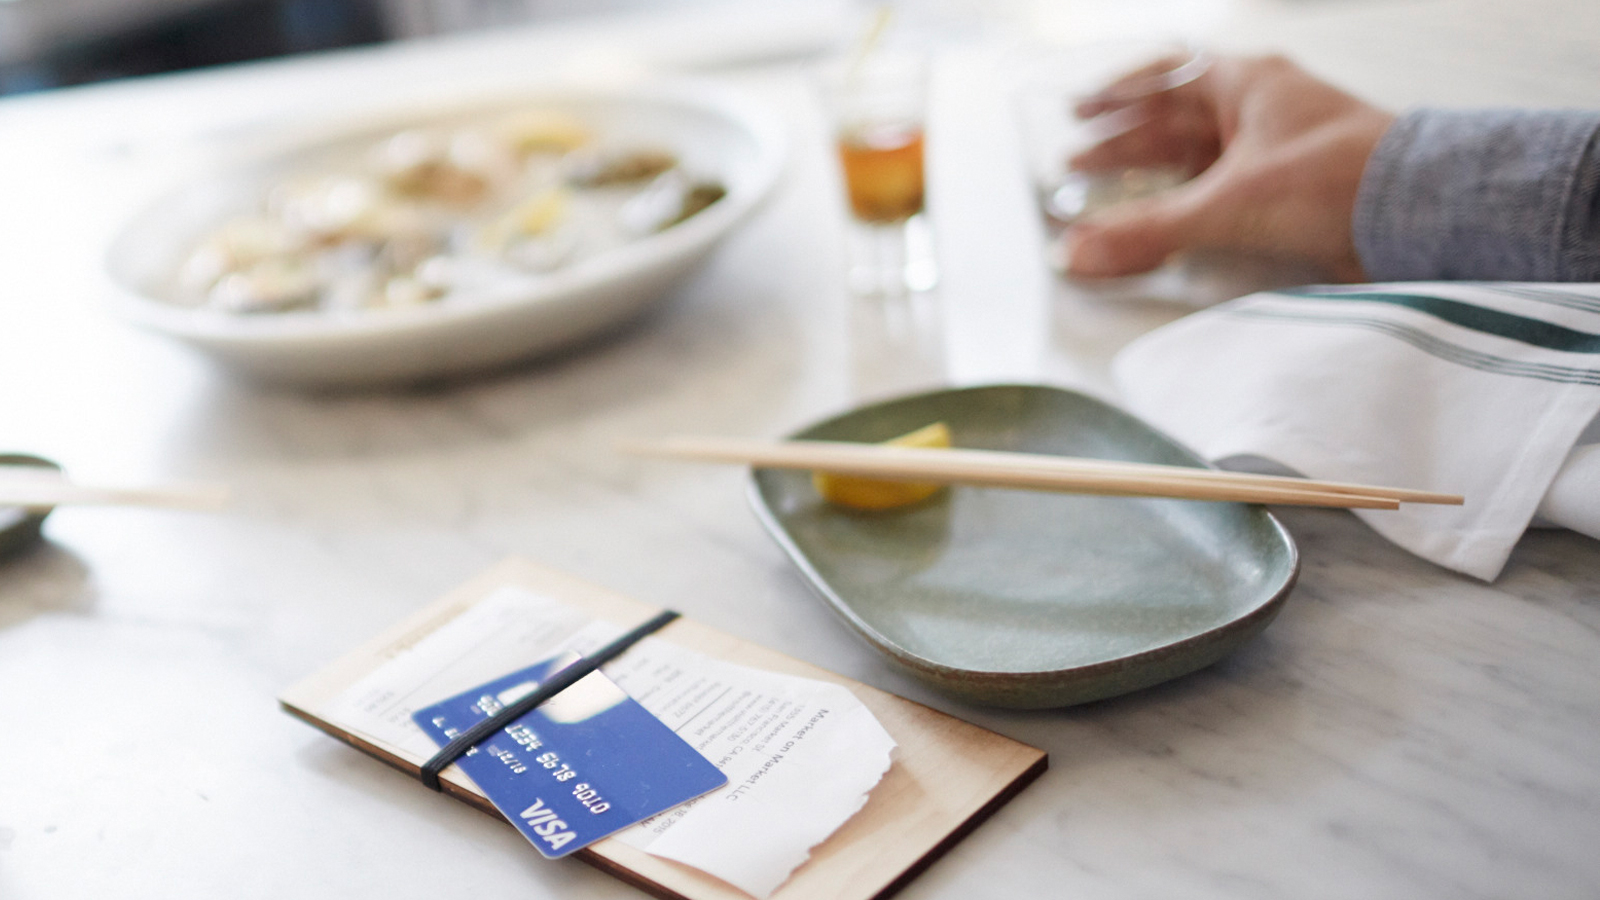 A restaurant table with plates of food and drinks showing a Visa card on top of a check.